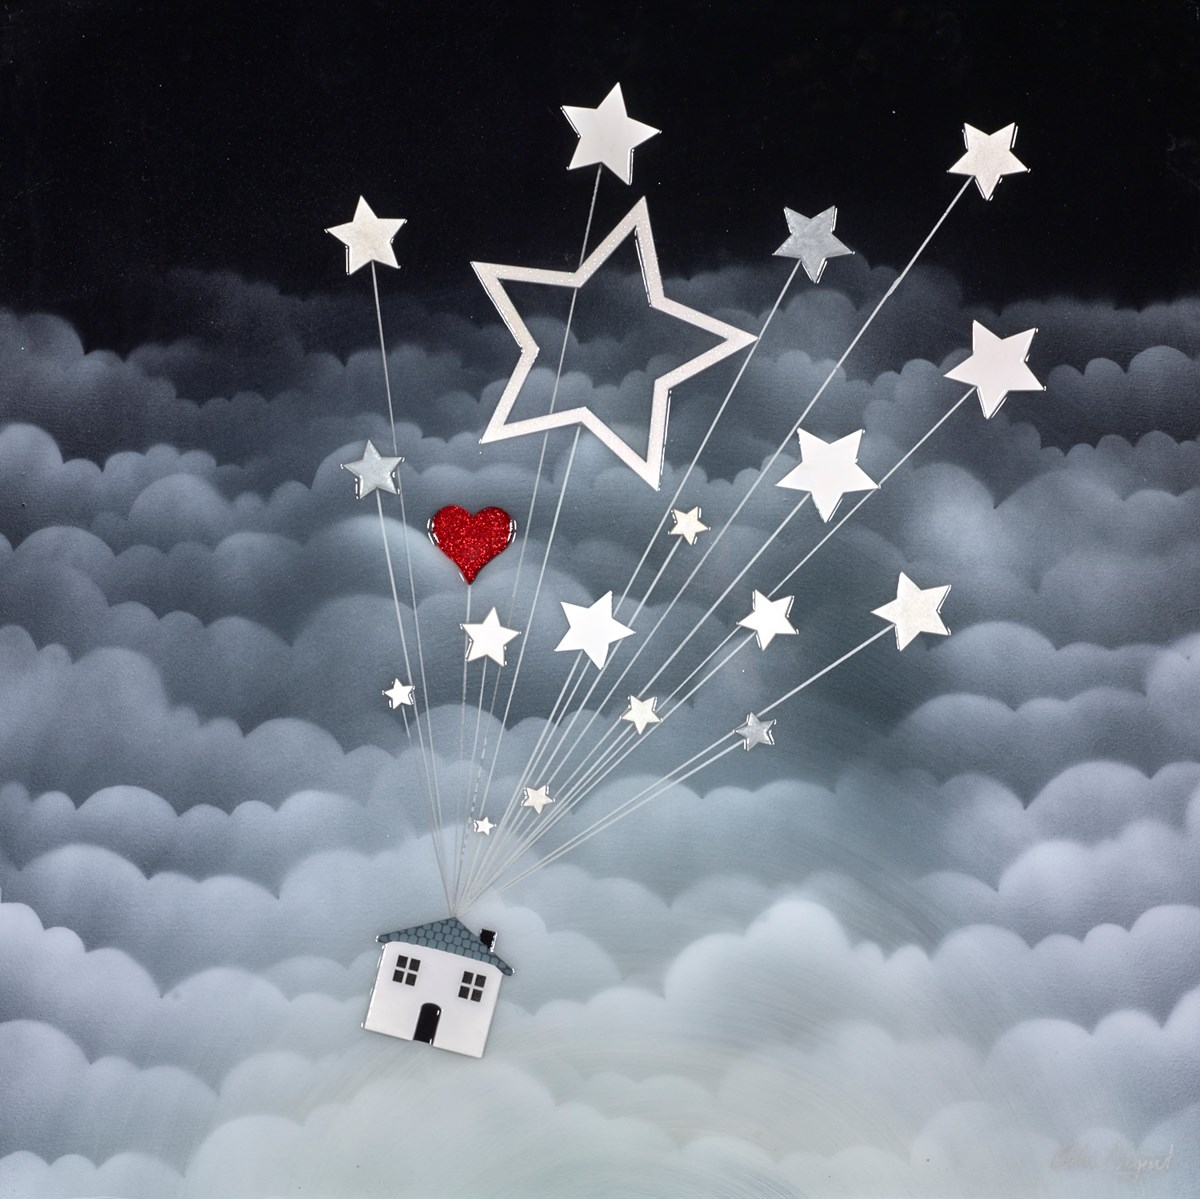 To the Stars by chloe nugent -  sized 24x24 inches. Available from Whitewall Galleries